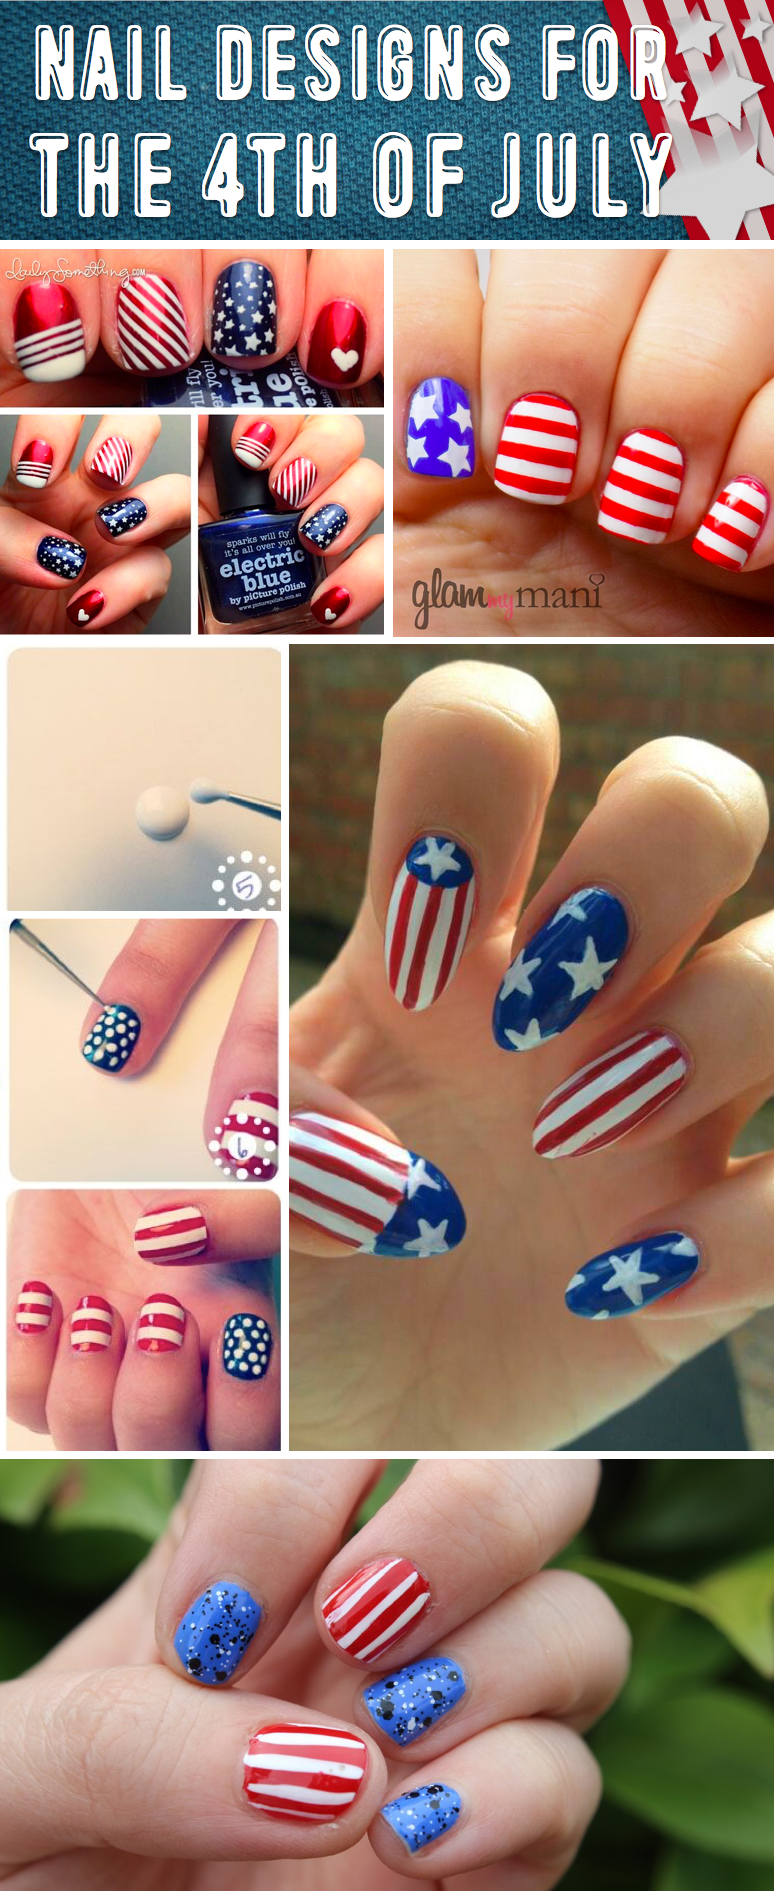 20+ Amazing Patriotic Nail Designs For The 4th Of July – Cute DIY ...